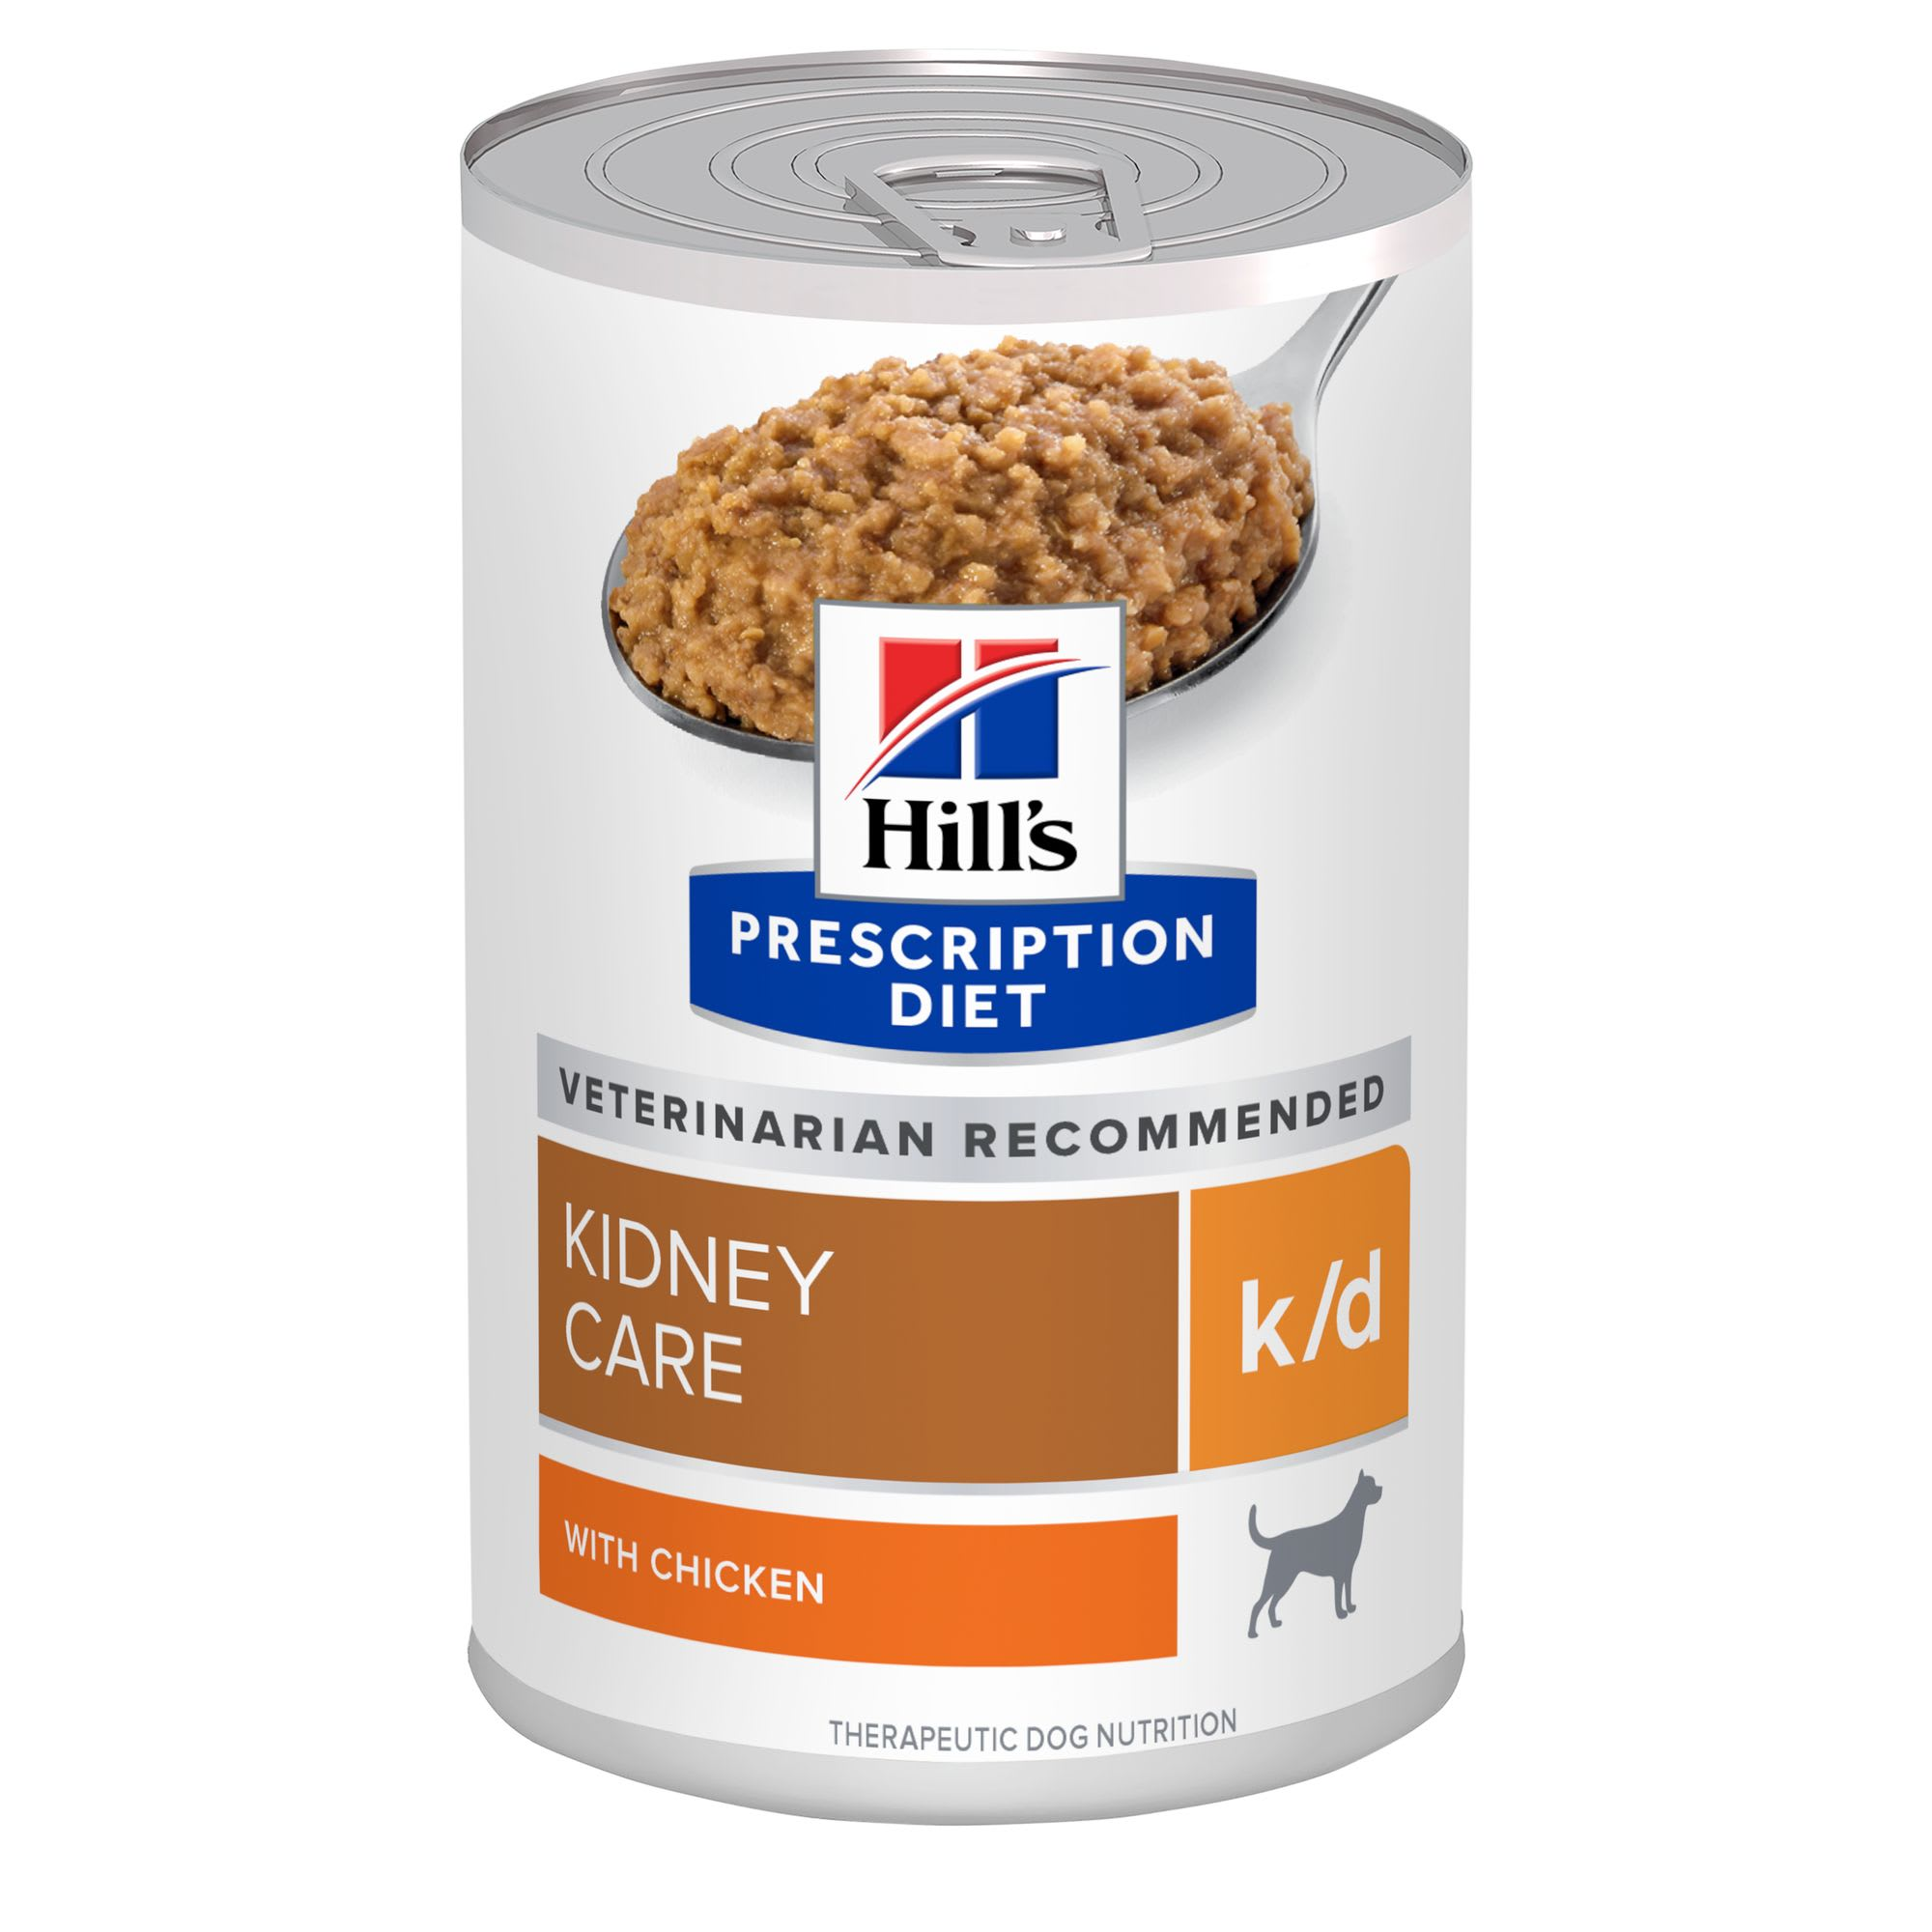 Kidney Care with Chicken Canned Dog